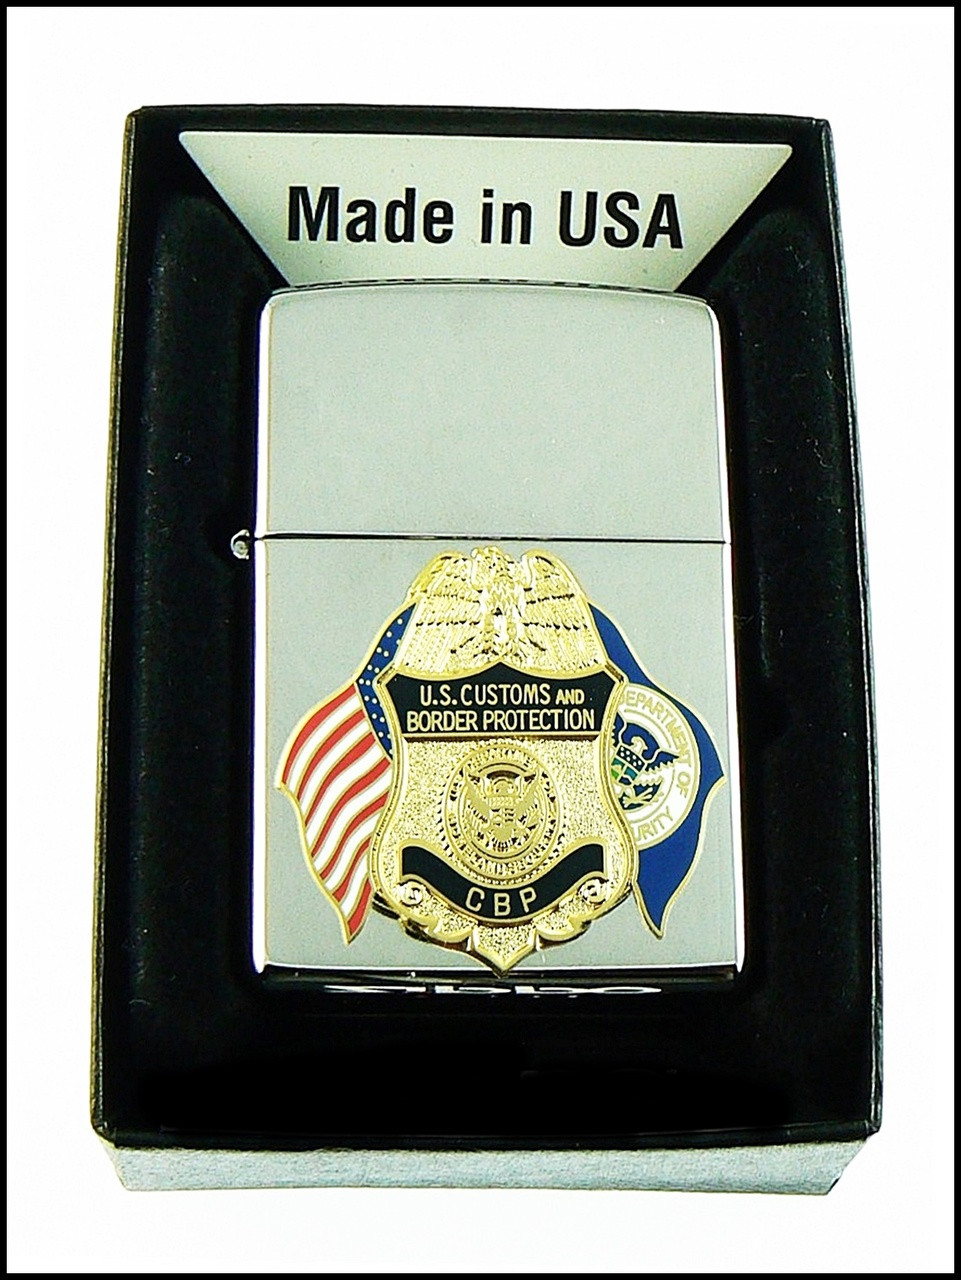 Customs and Border Protection Mini Badge and Flags Chrome Cigarette Lighters